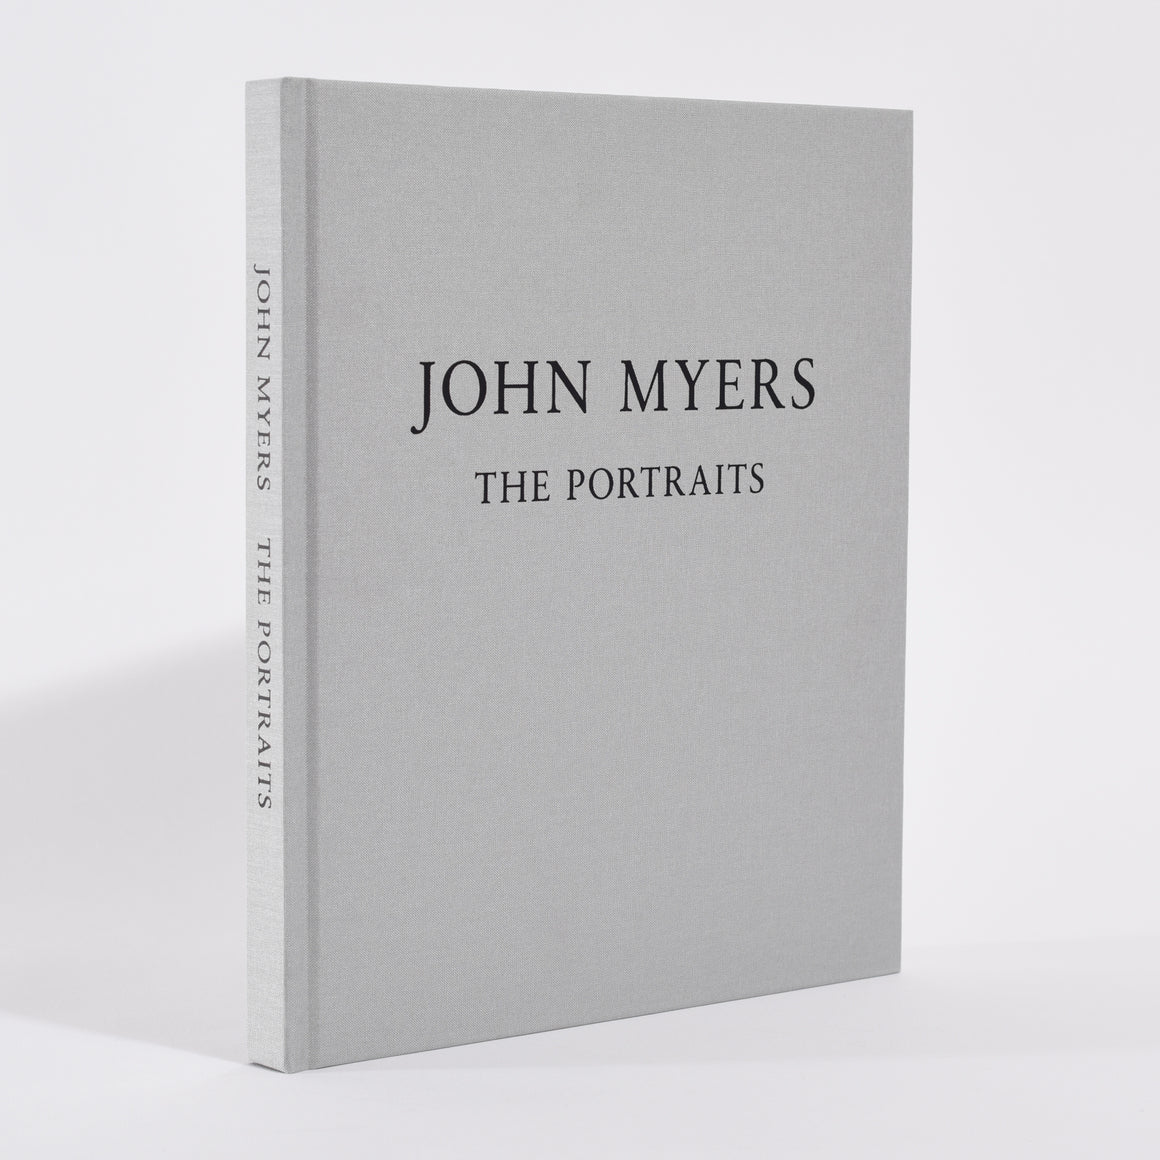 John Myers - The Portraits (signed)